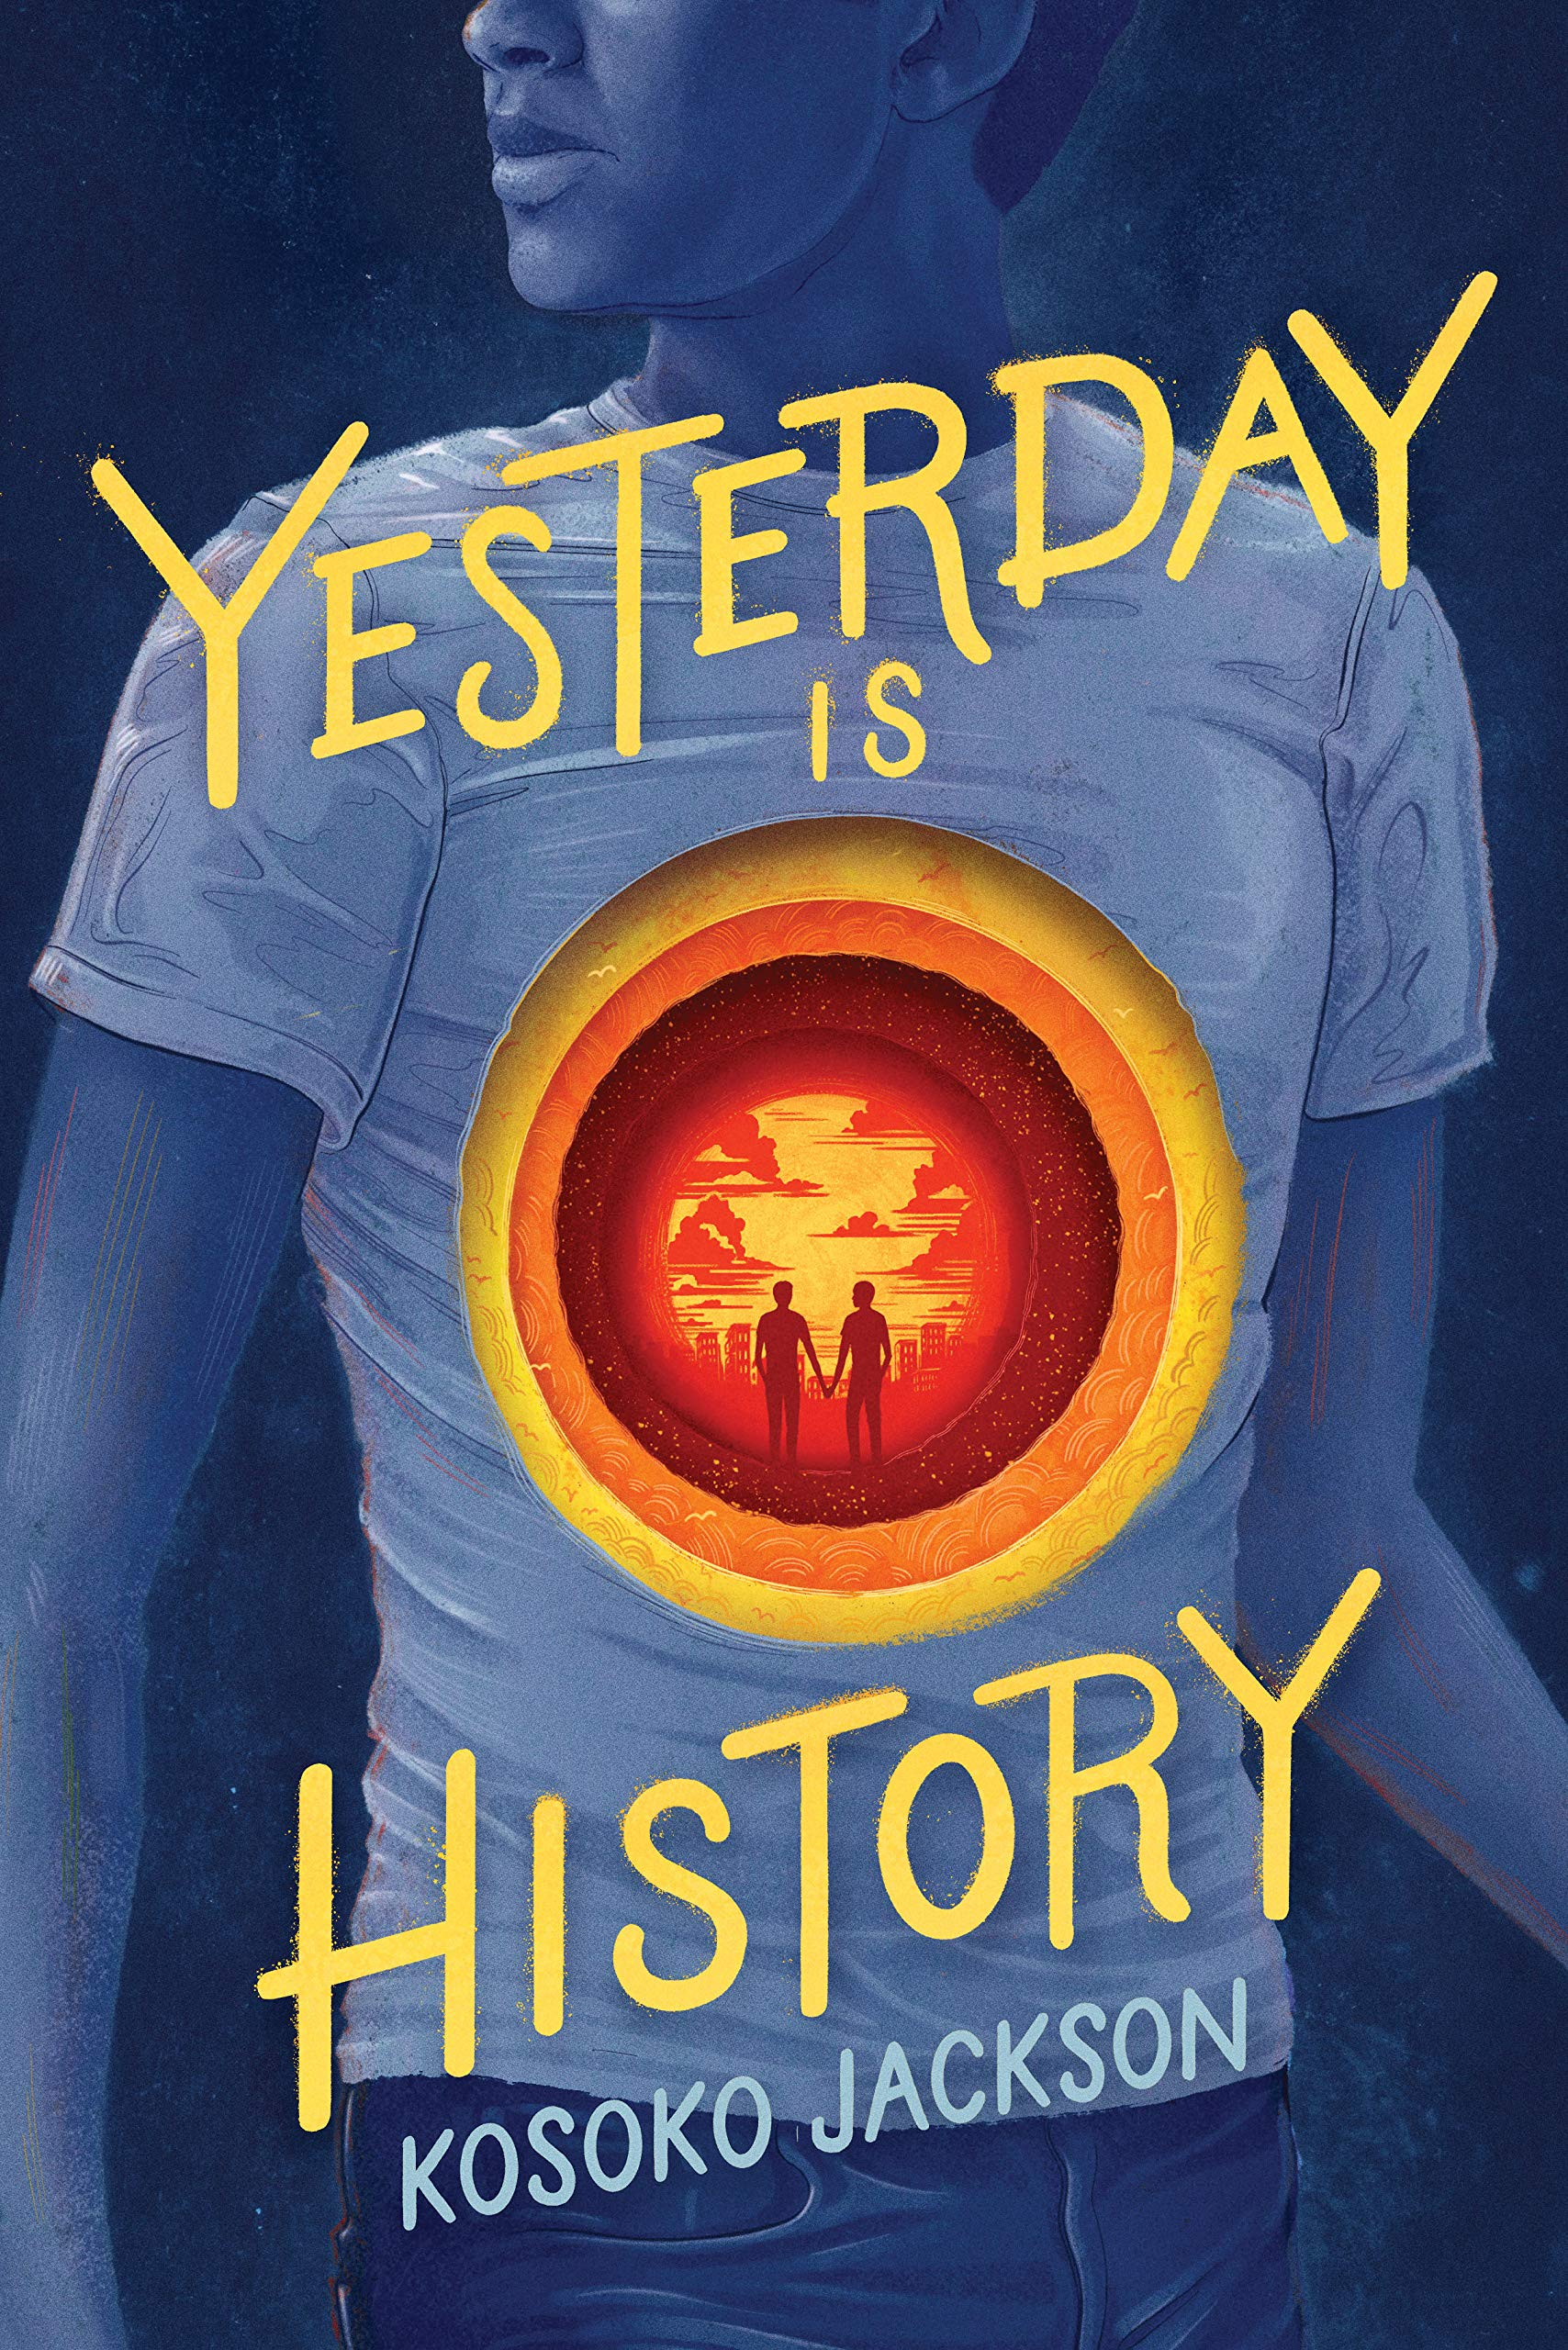 Yesterday Is History: Amazon.ca: Jackson, Kosoko: Books